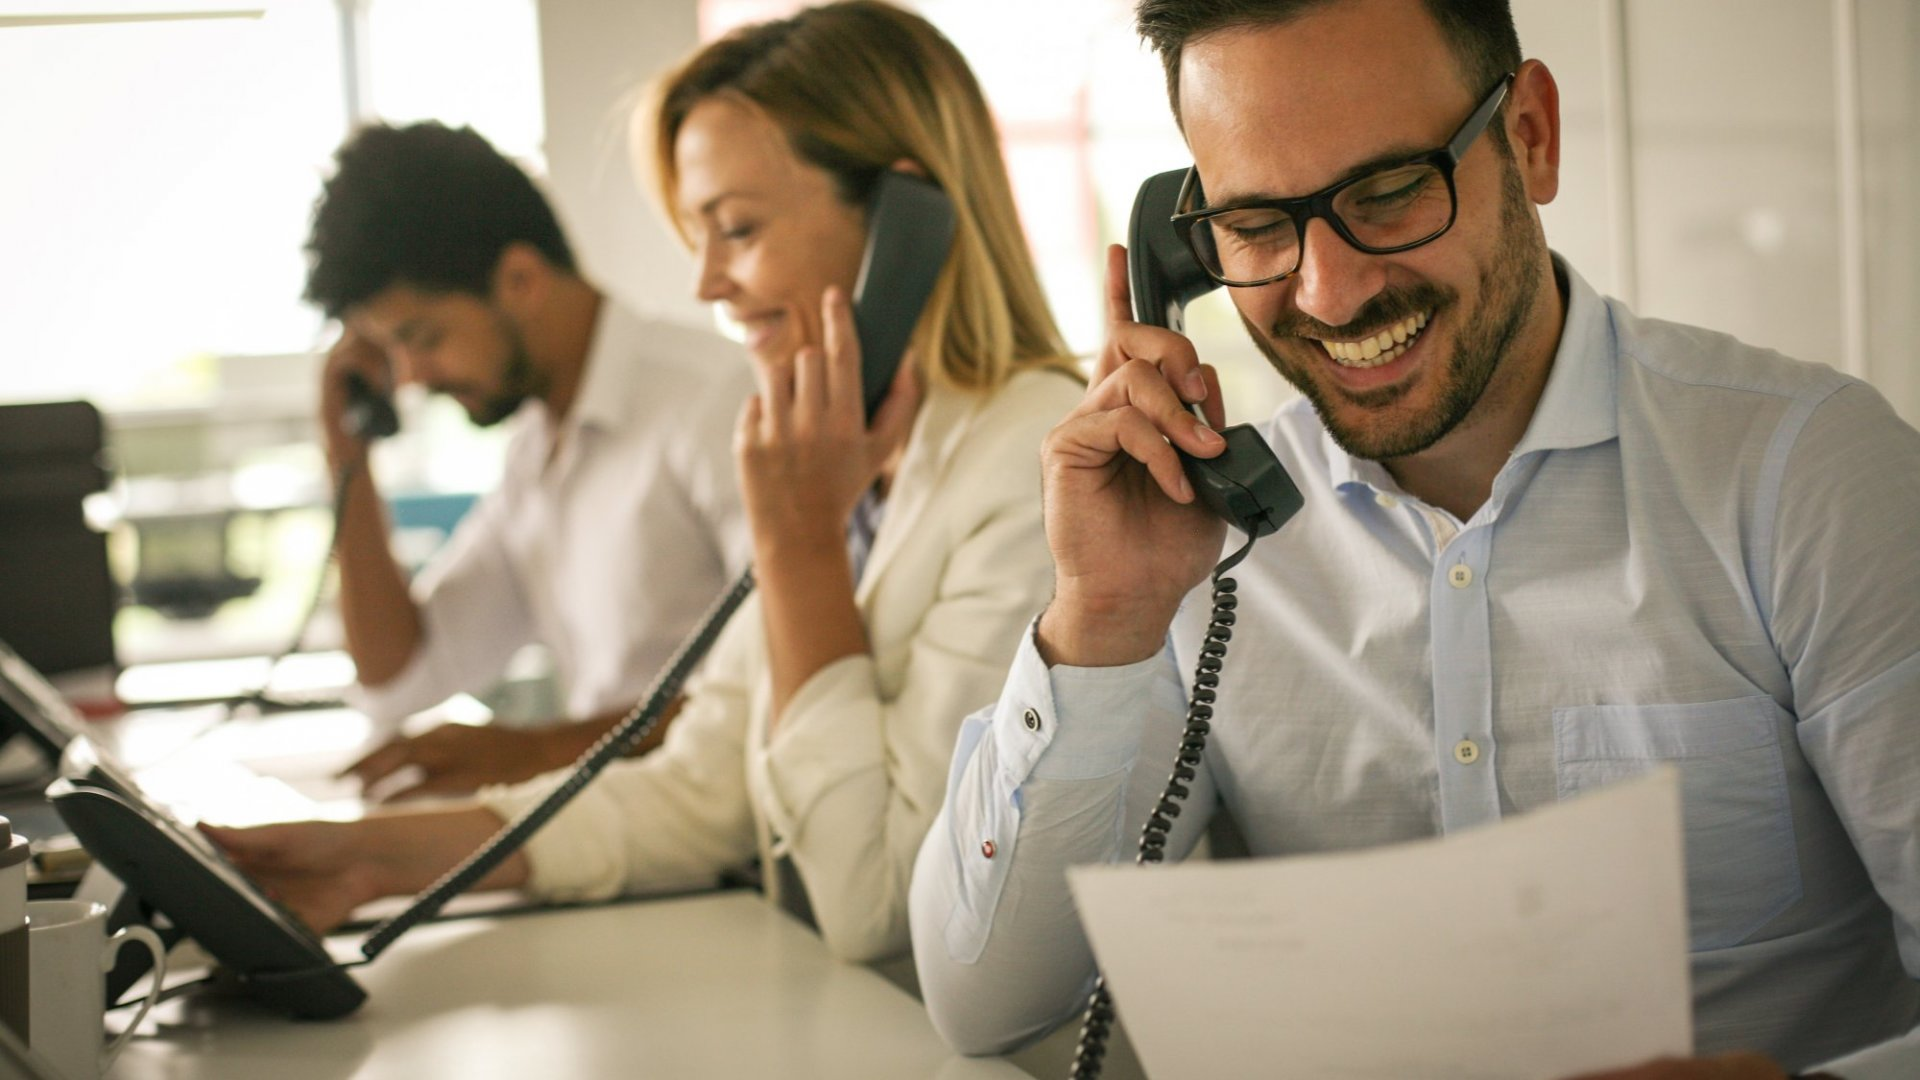 Keen on Providing Five-Star Customer Service? Try These 6 Tips